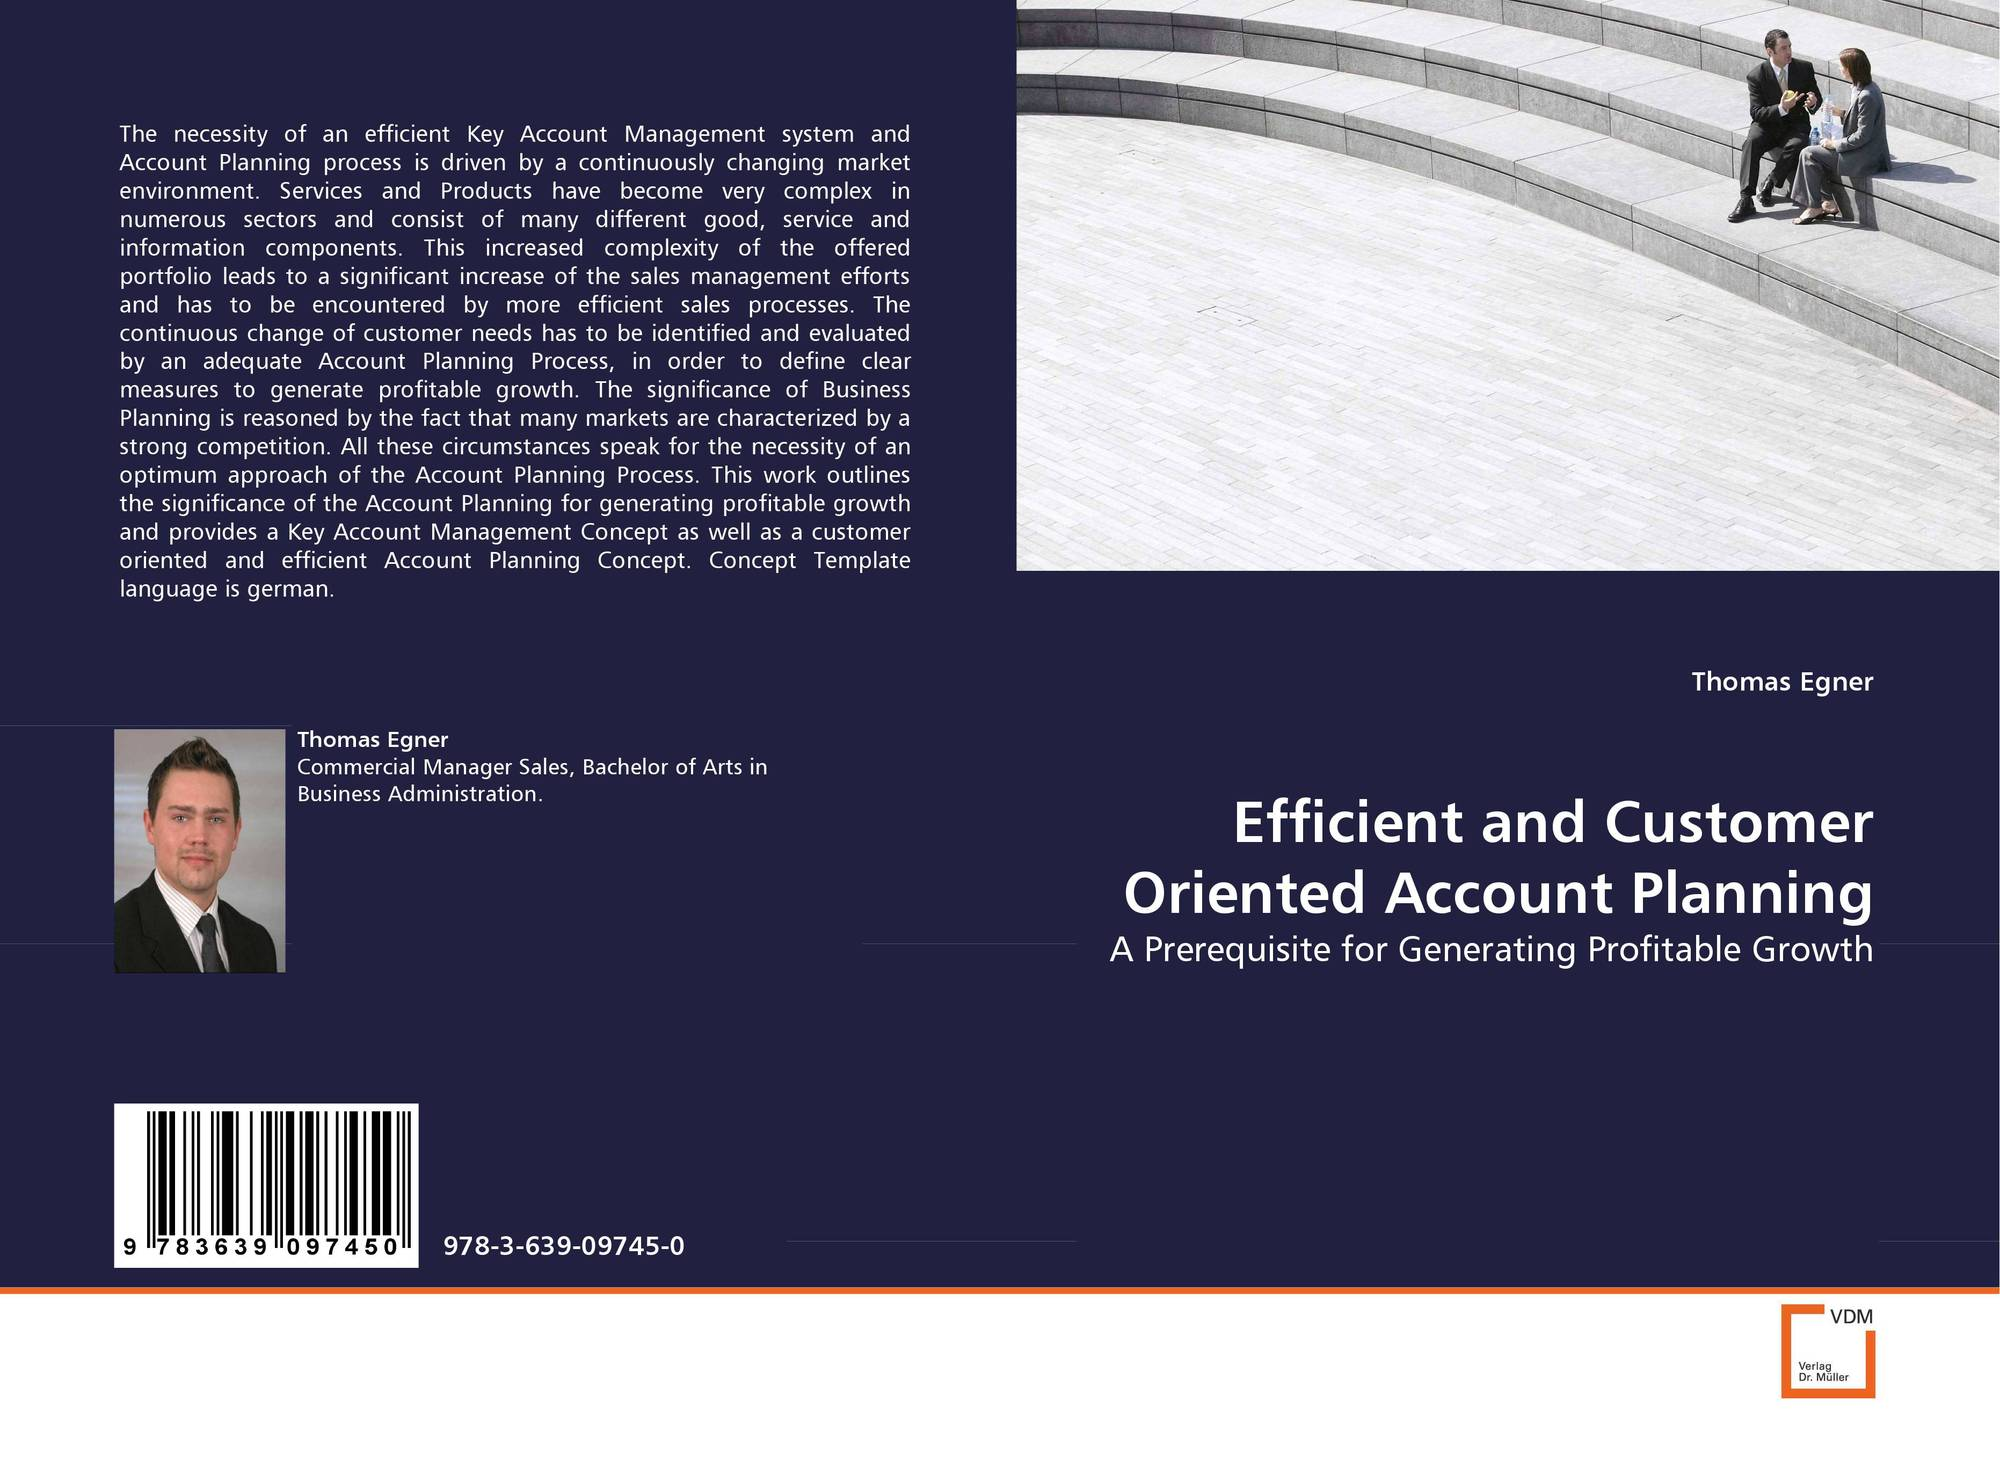 German/customer/account/create - Bookcover Of Efficient And Customer Oriented Account Planning